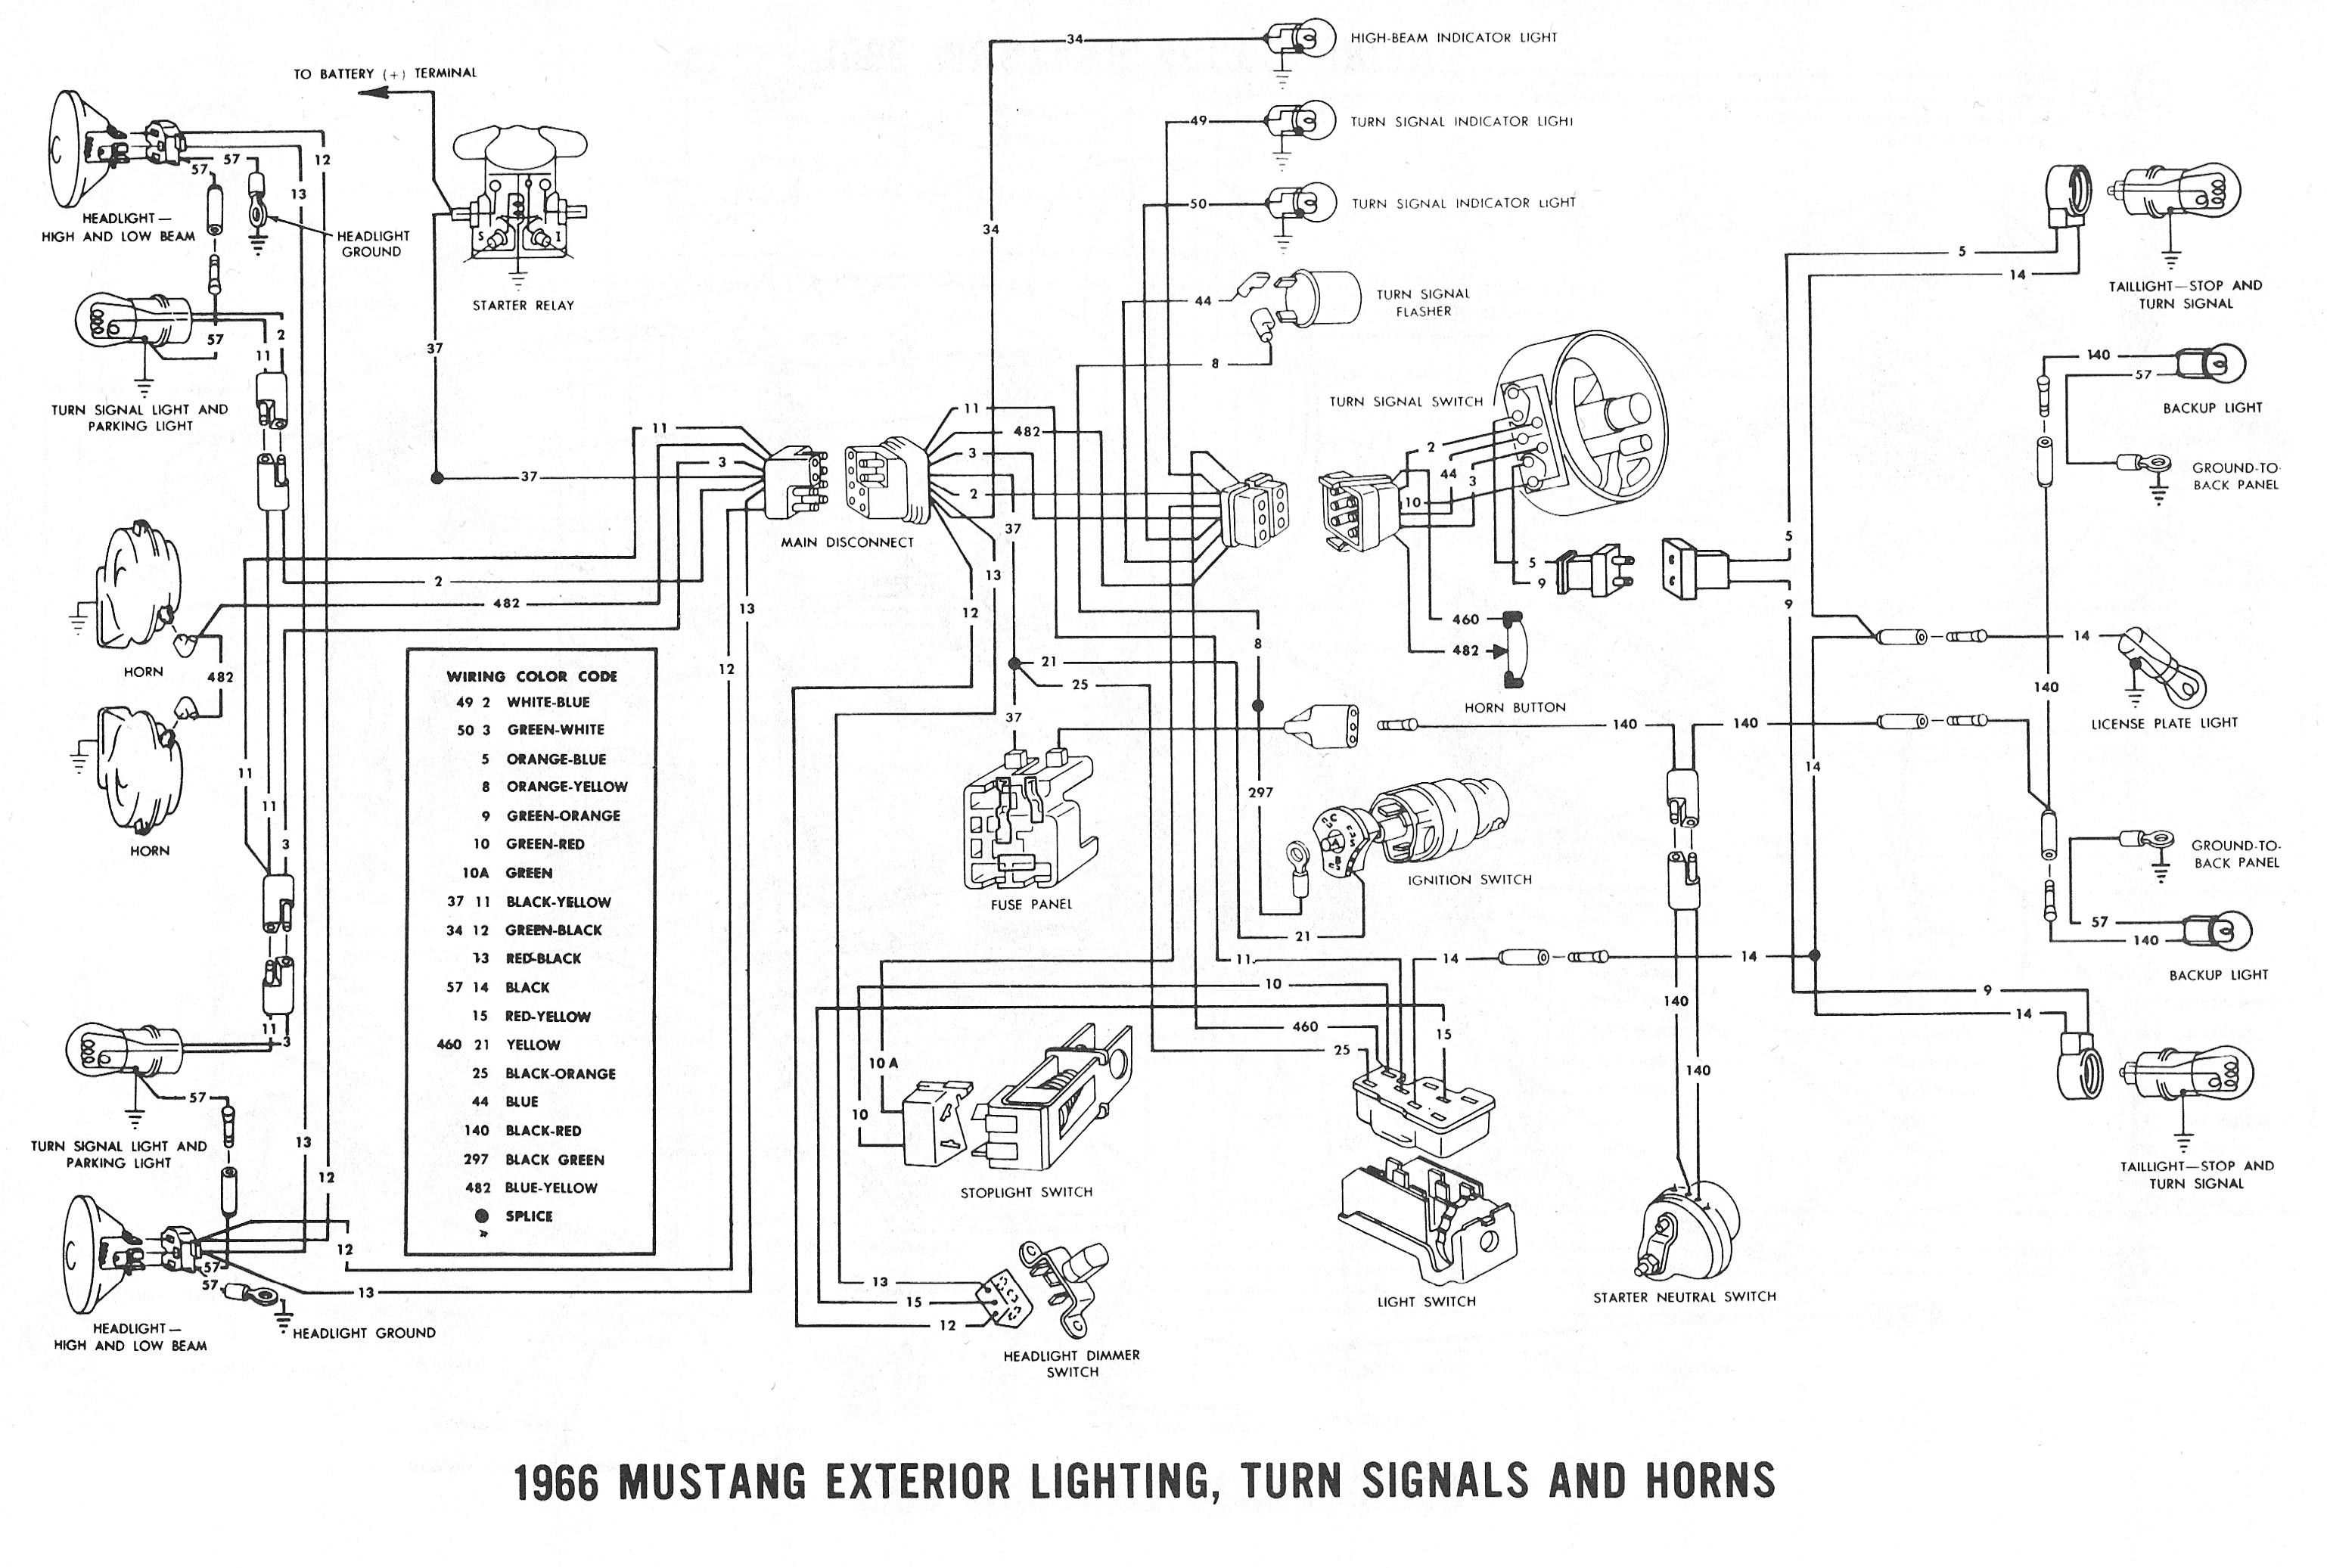 1967 Ford F150 Wiring Diagram Reinvent Your 2004 Blend Door Schematic 1966 Mustang Turn Signal Detailed Diagrams Rh Developerpodcast Co F 150 Radio